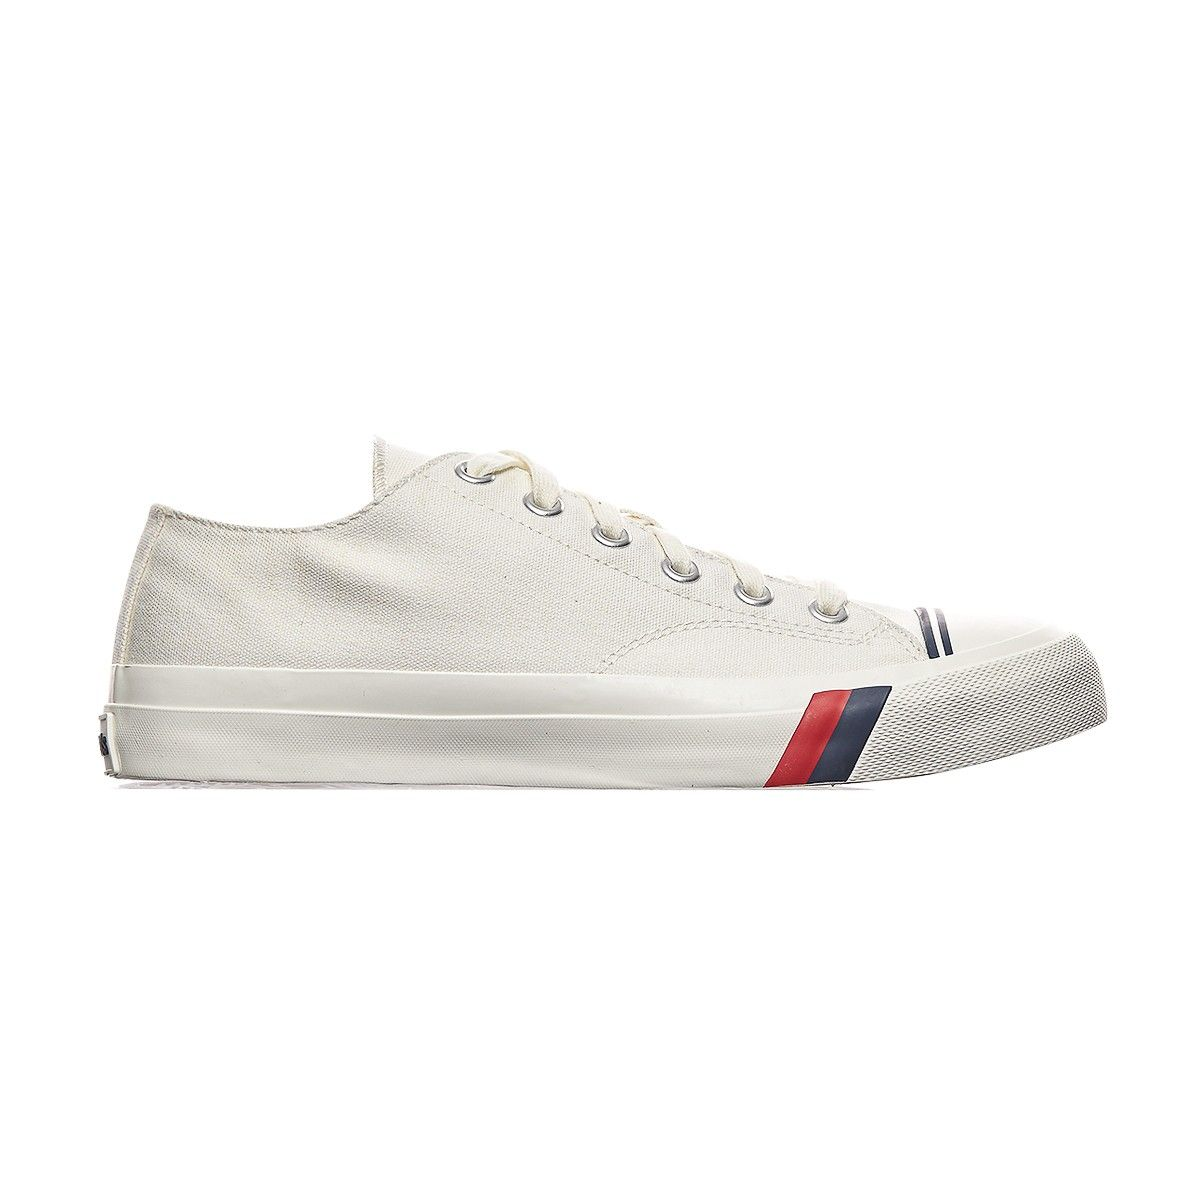 PRO-Keds Royal Lo Core Sneakers